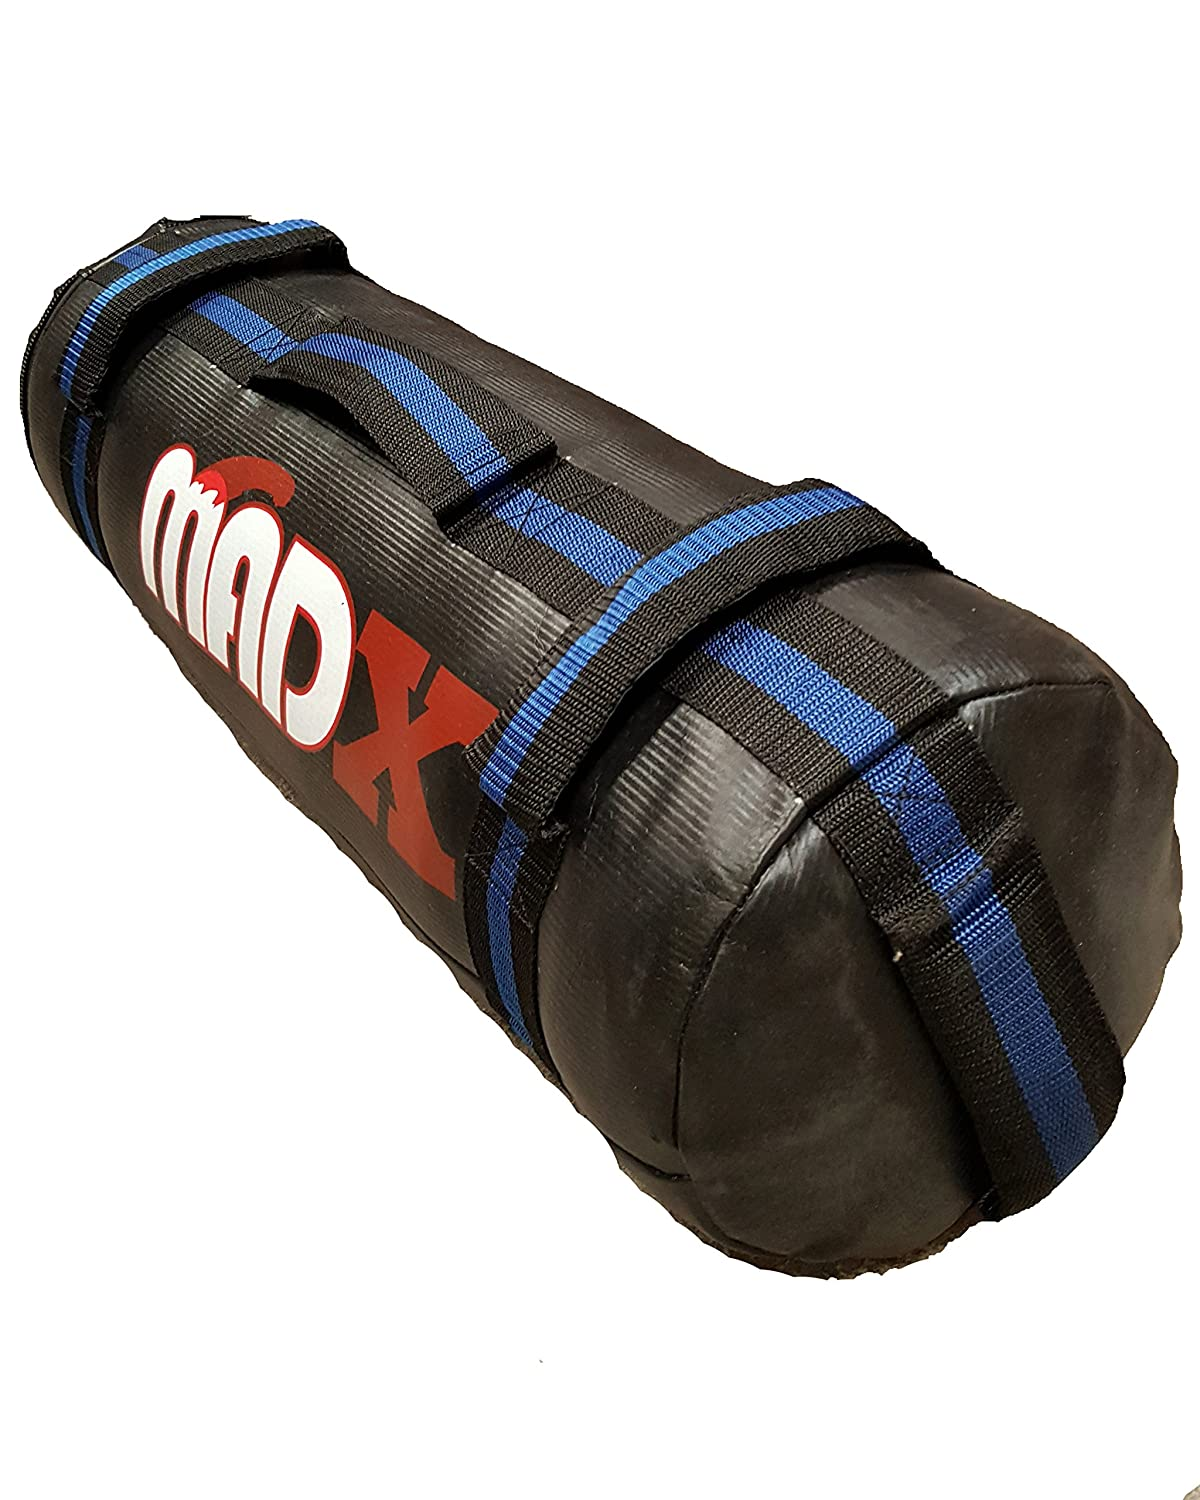 MADX Blue 0-25kg Power Cloth//Sand FILLED Bag Crossfit Boxing MMA Training Fitness 25kg